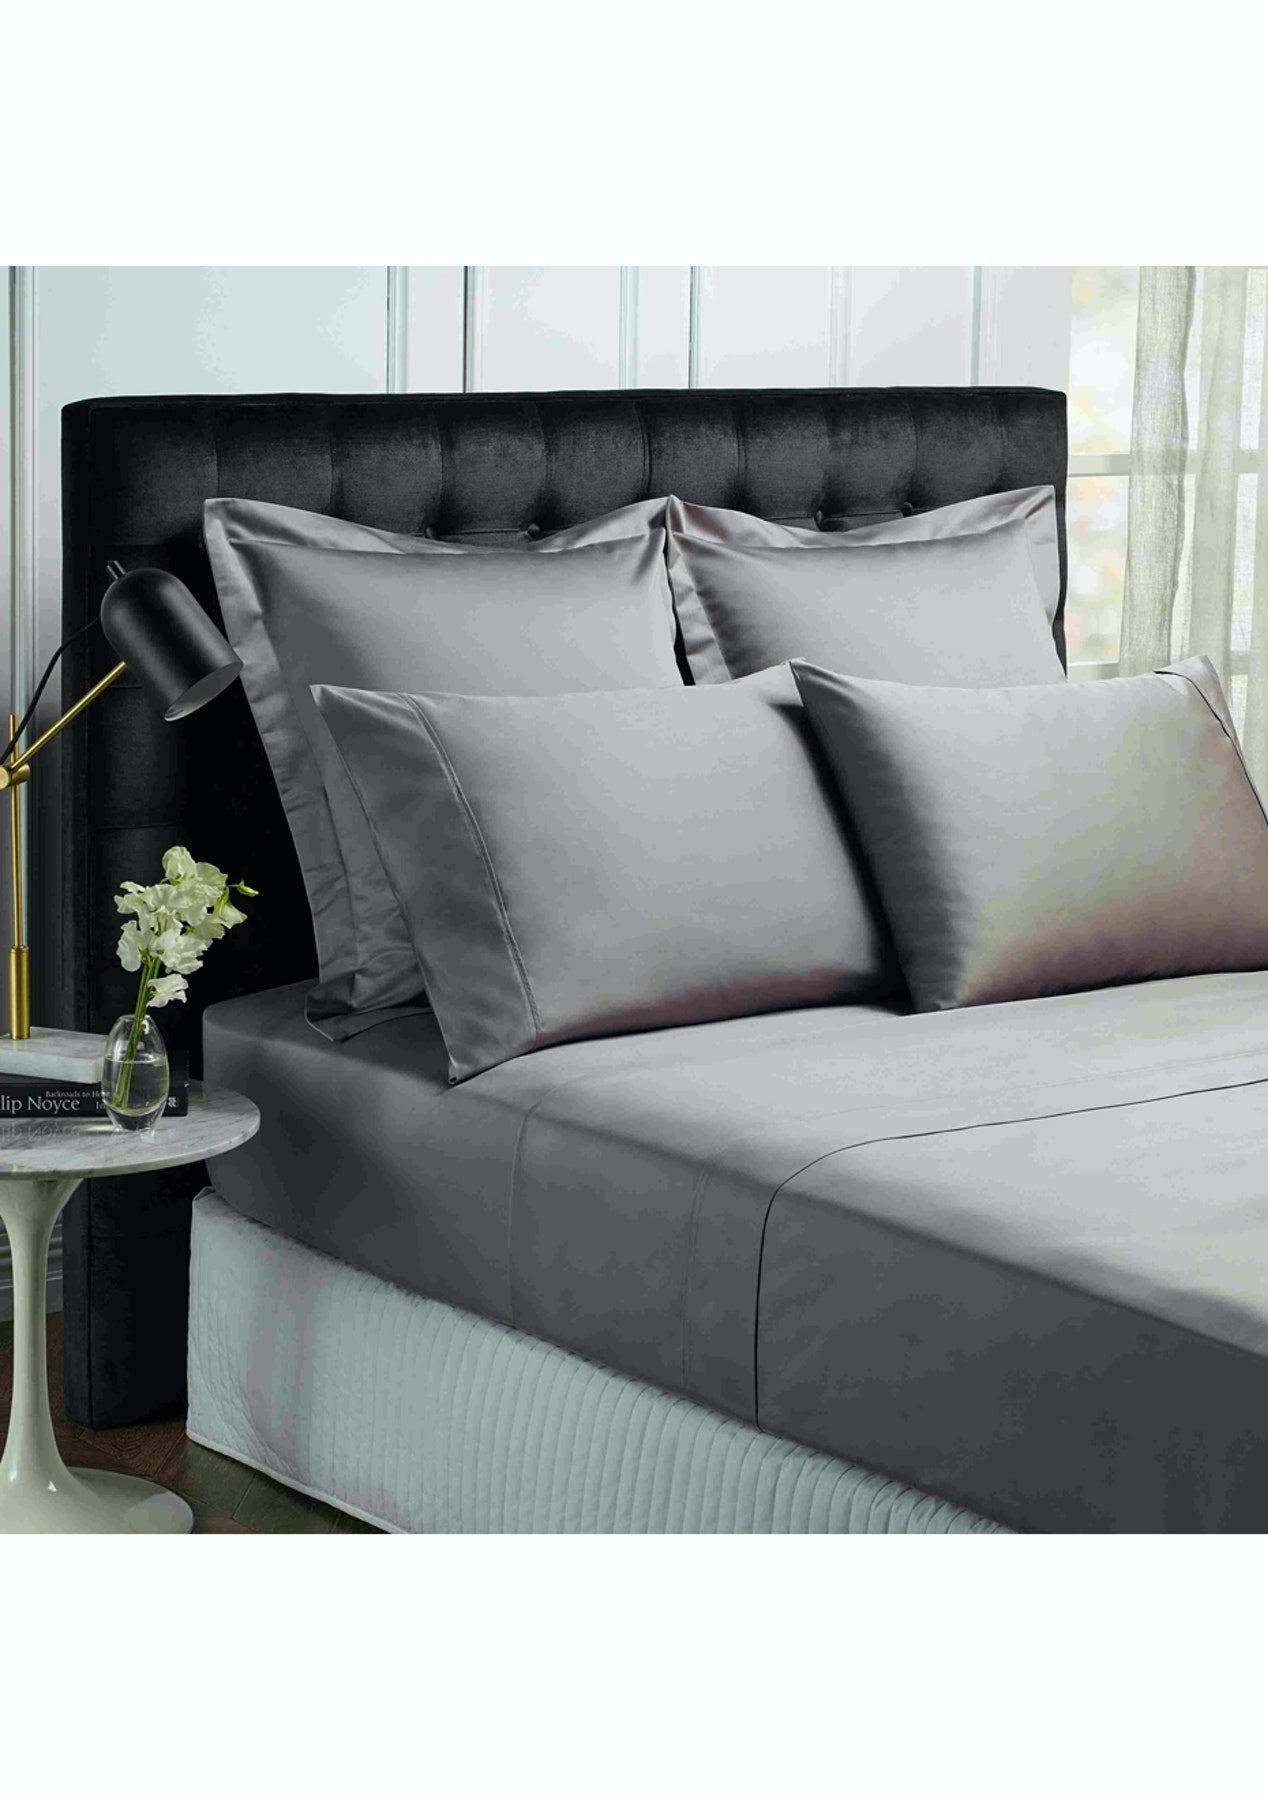 Park Avenue 1200 Thread Count Egyptian Cotton Sheet Sets Queen Pewter Free Shipping Bedding Best Ers Onceit